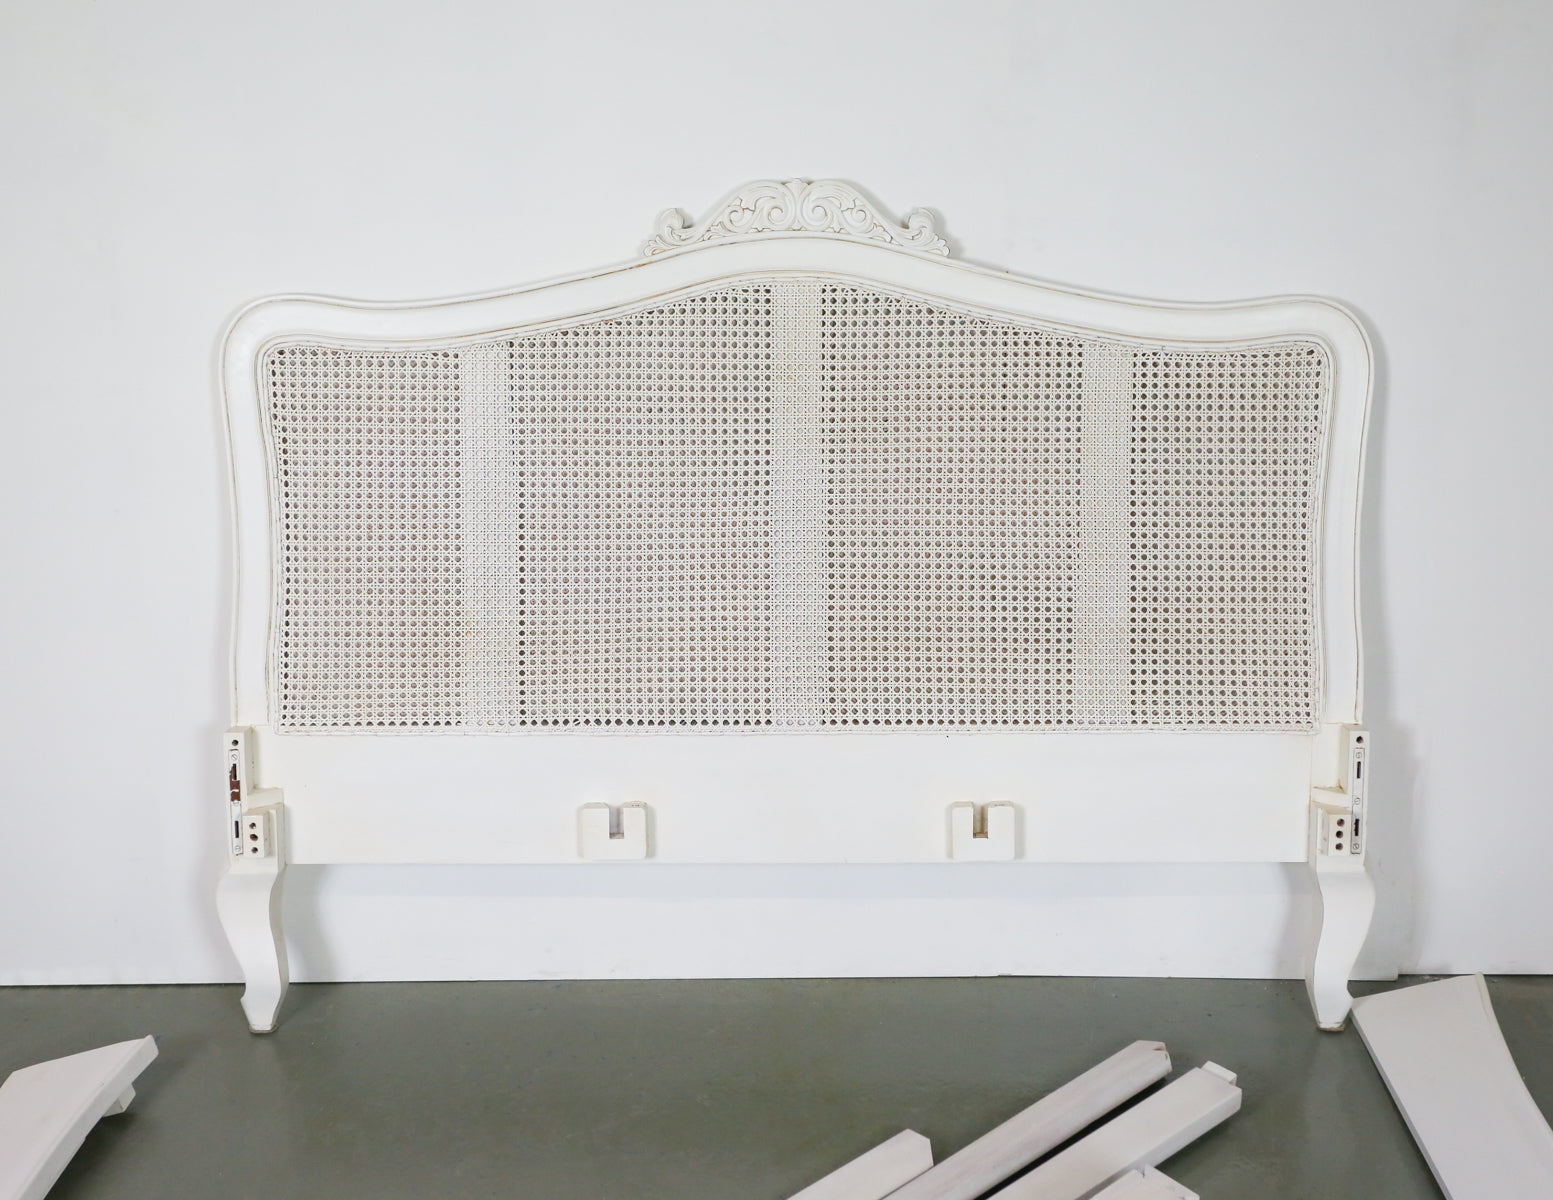 King Size French Inspired Bed from Urban Living